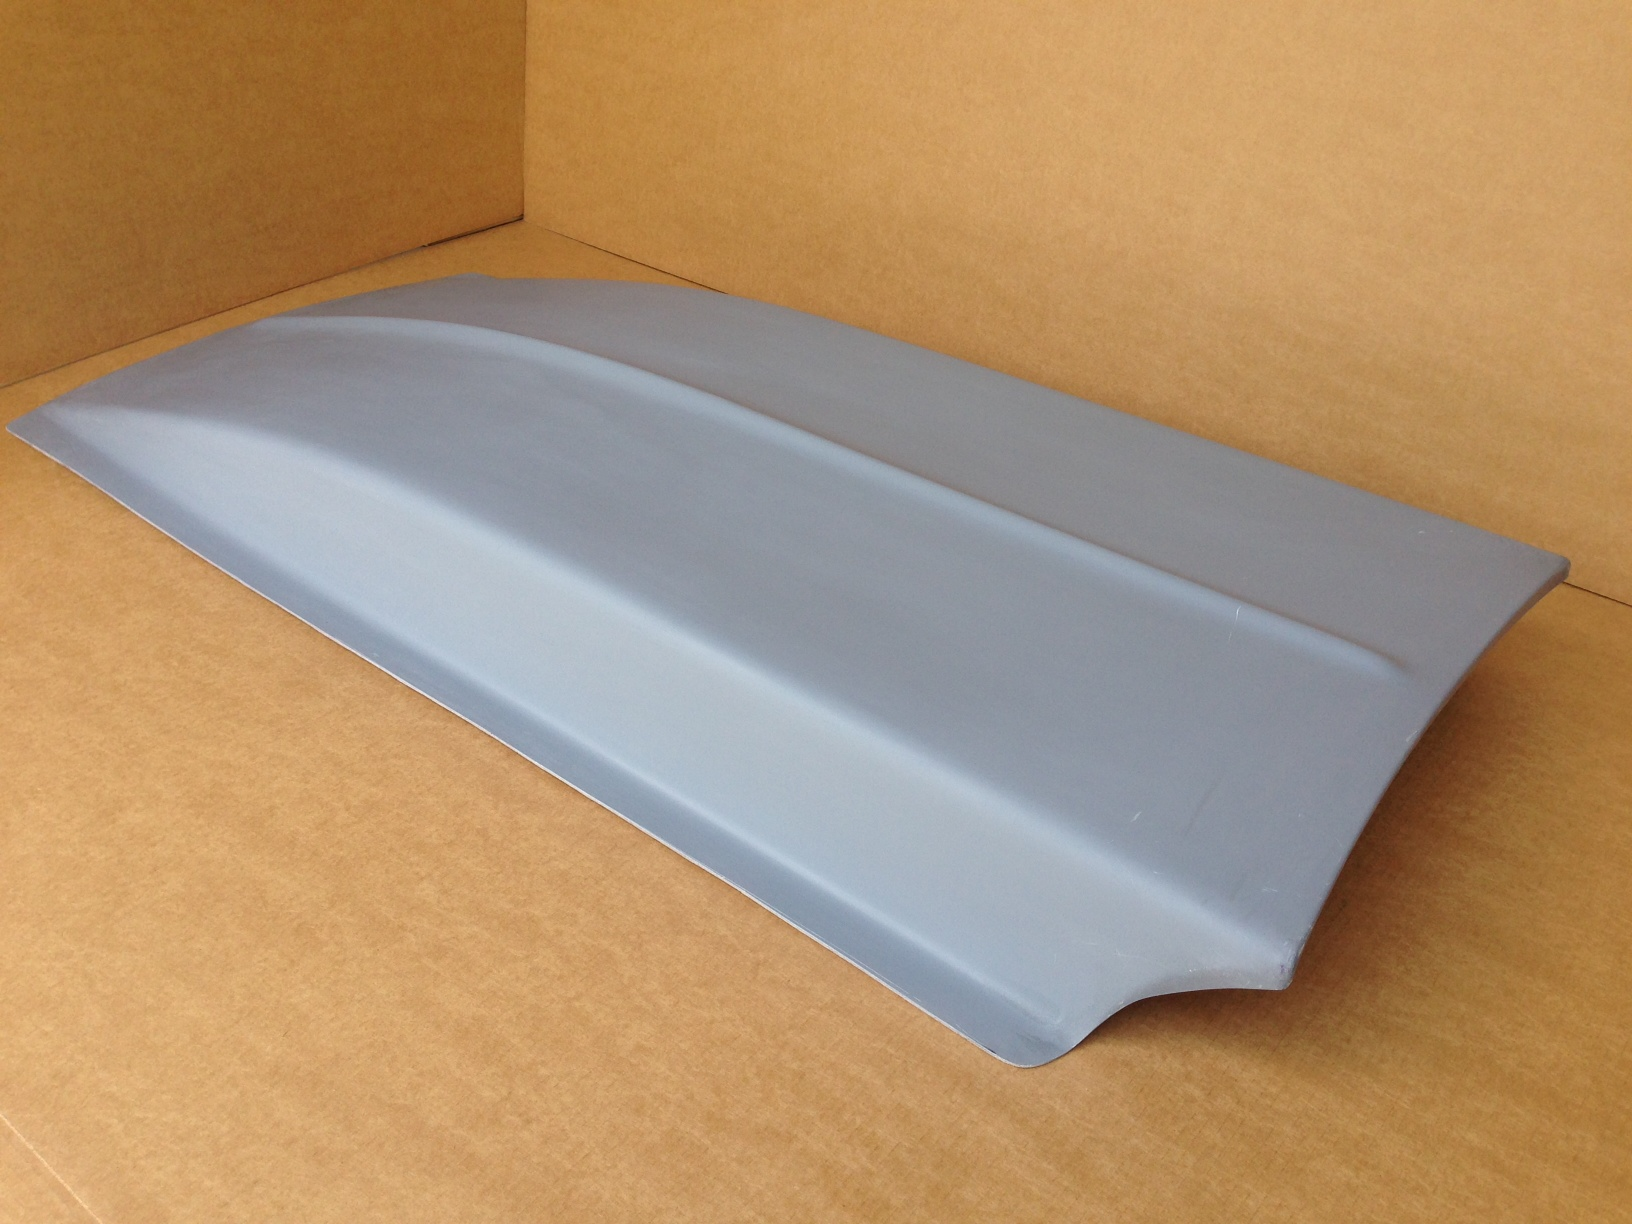 Cowl Induction Hood Scoops : Cowl induction hood scoop quot long chevy pontiac dodge